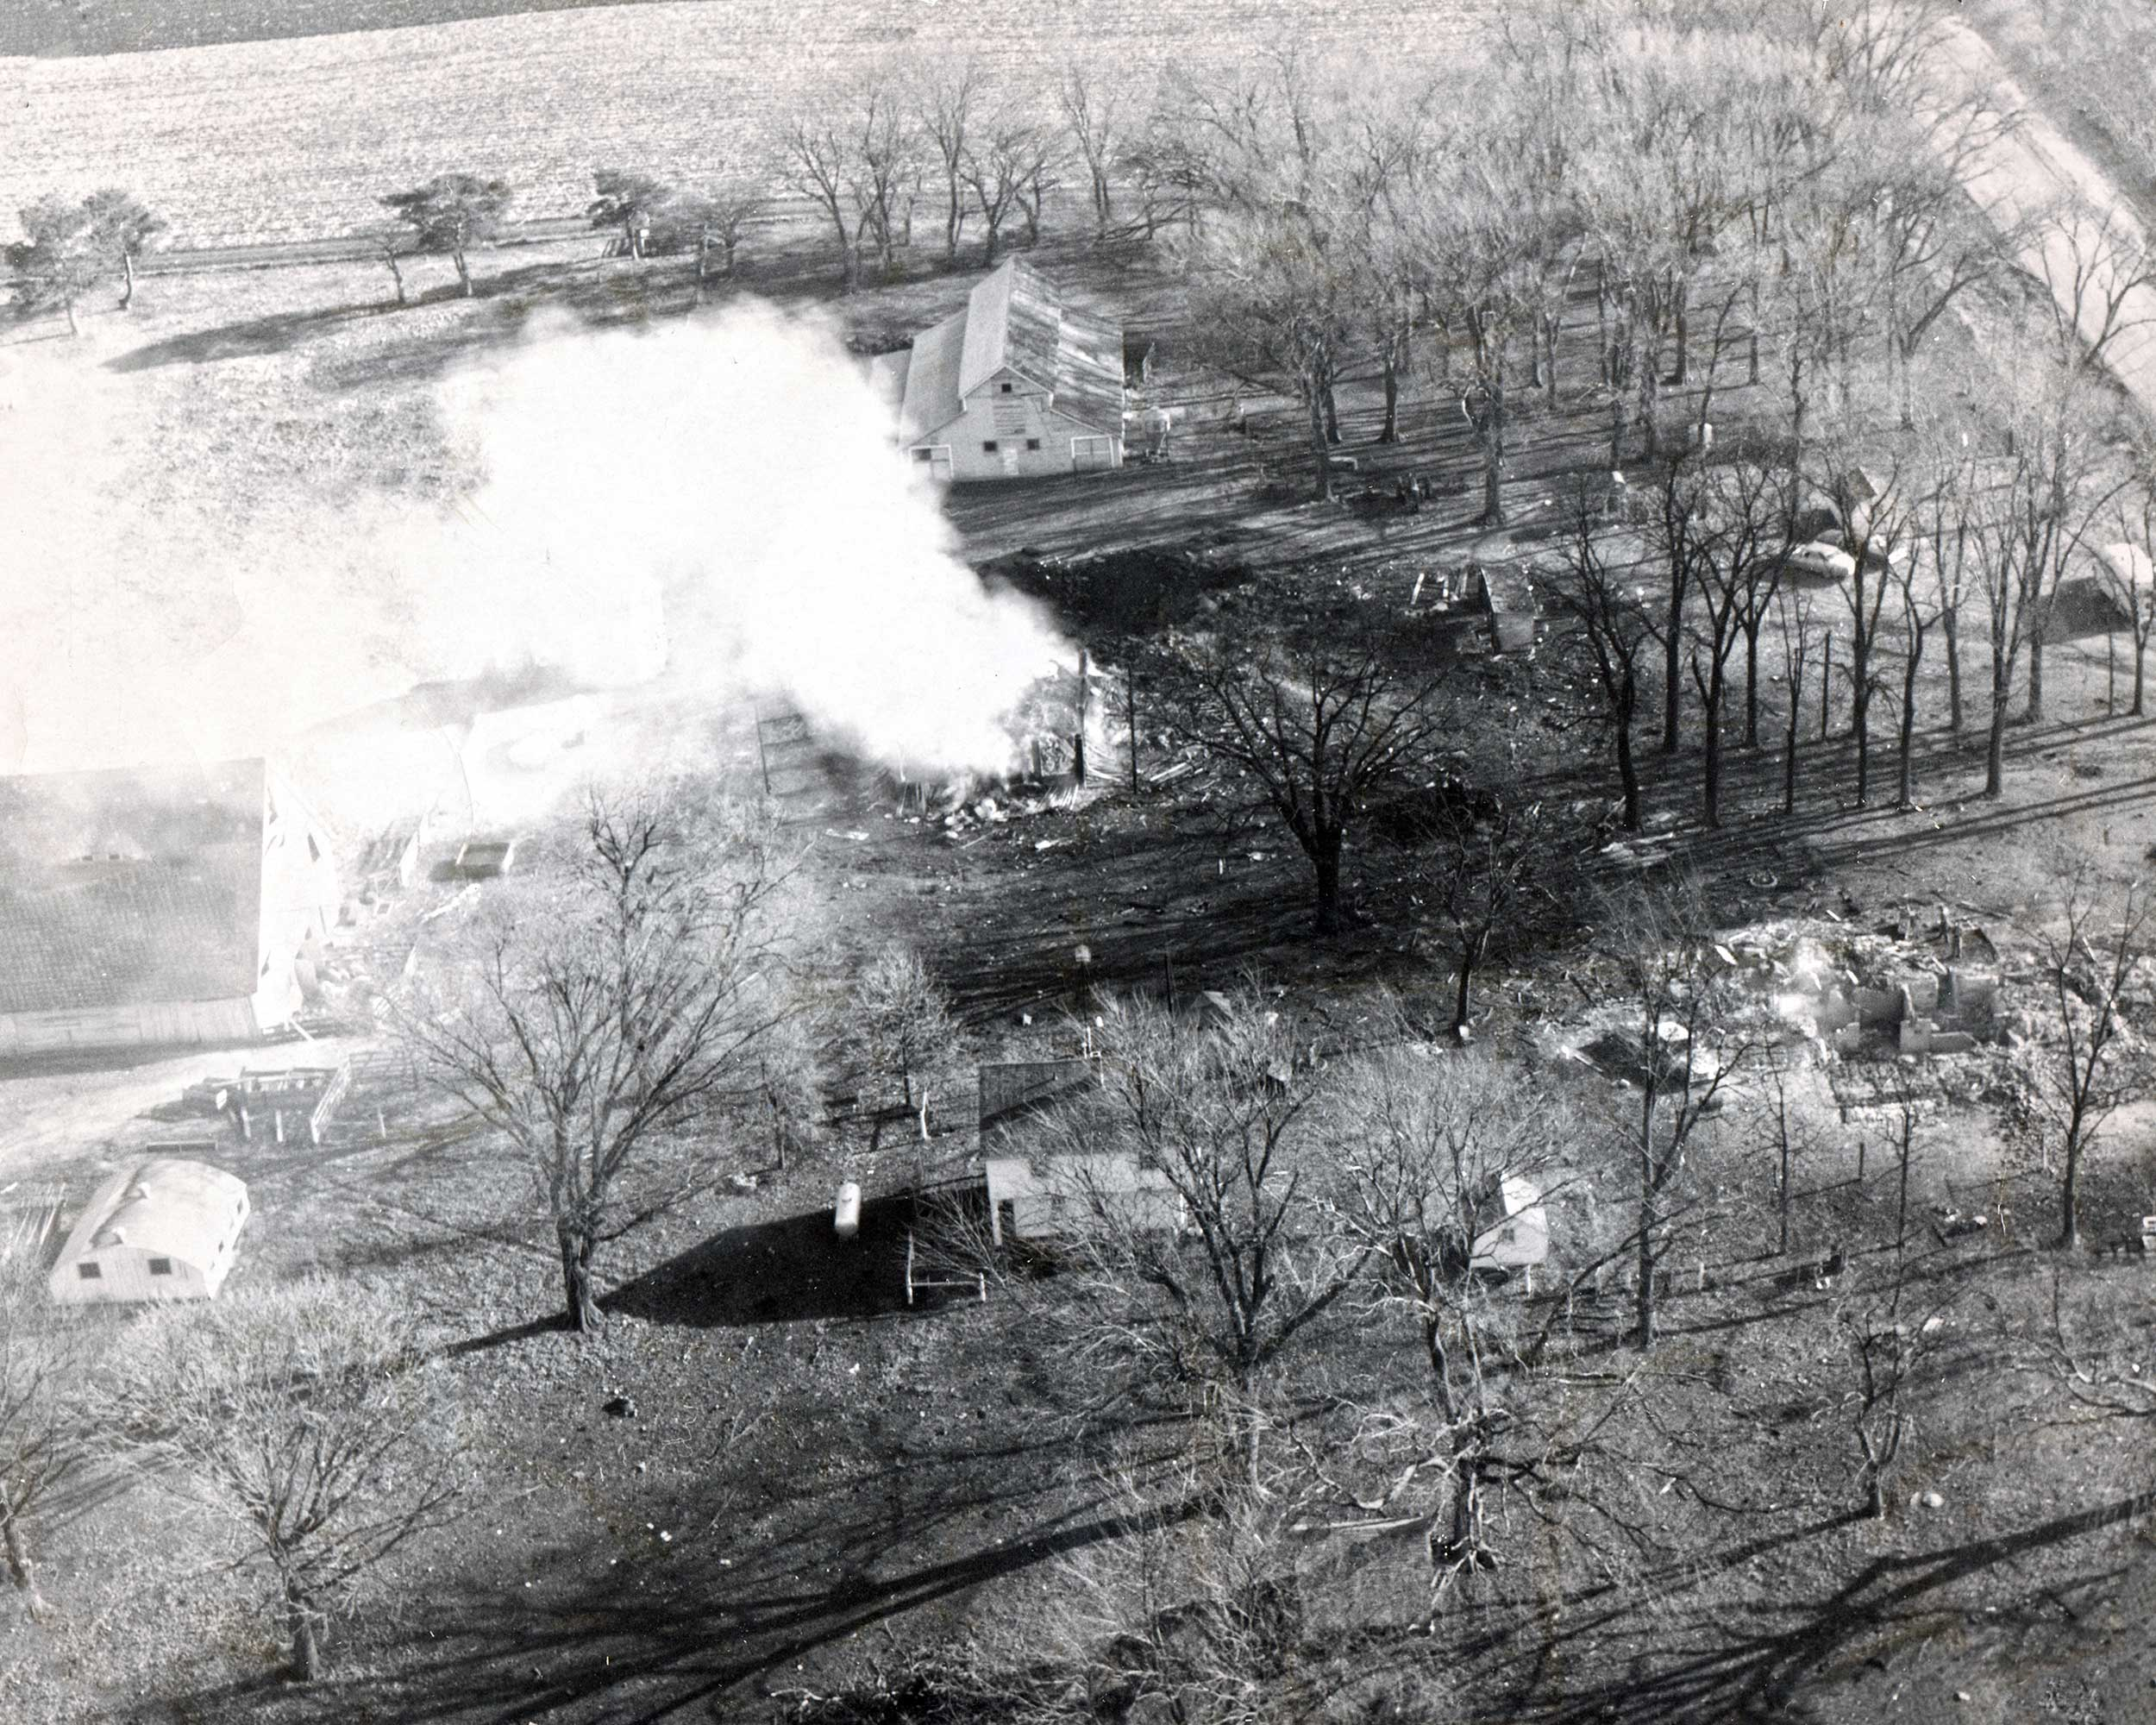 Follinglo Farm Destruction - Aerial photo taken from over I-35 looking East over the farm. The corncrib burns in the center of the photo with the crater from the explosion just visible through the smoke to the East beyond. The remains of the devastating house fire are visible in the lower right third of the photo.